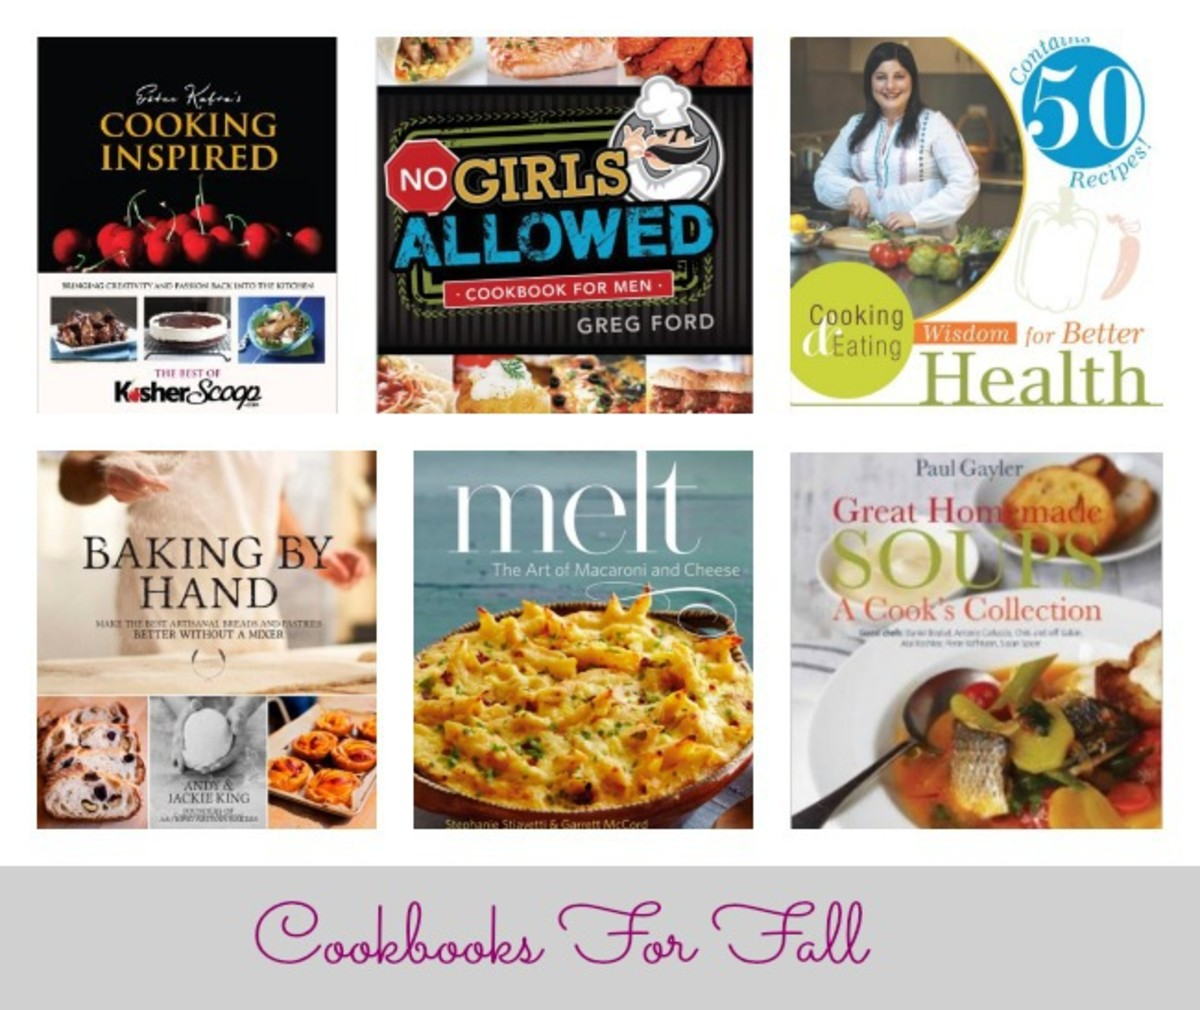 CookBooks for Fall